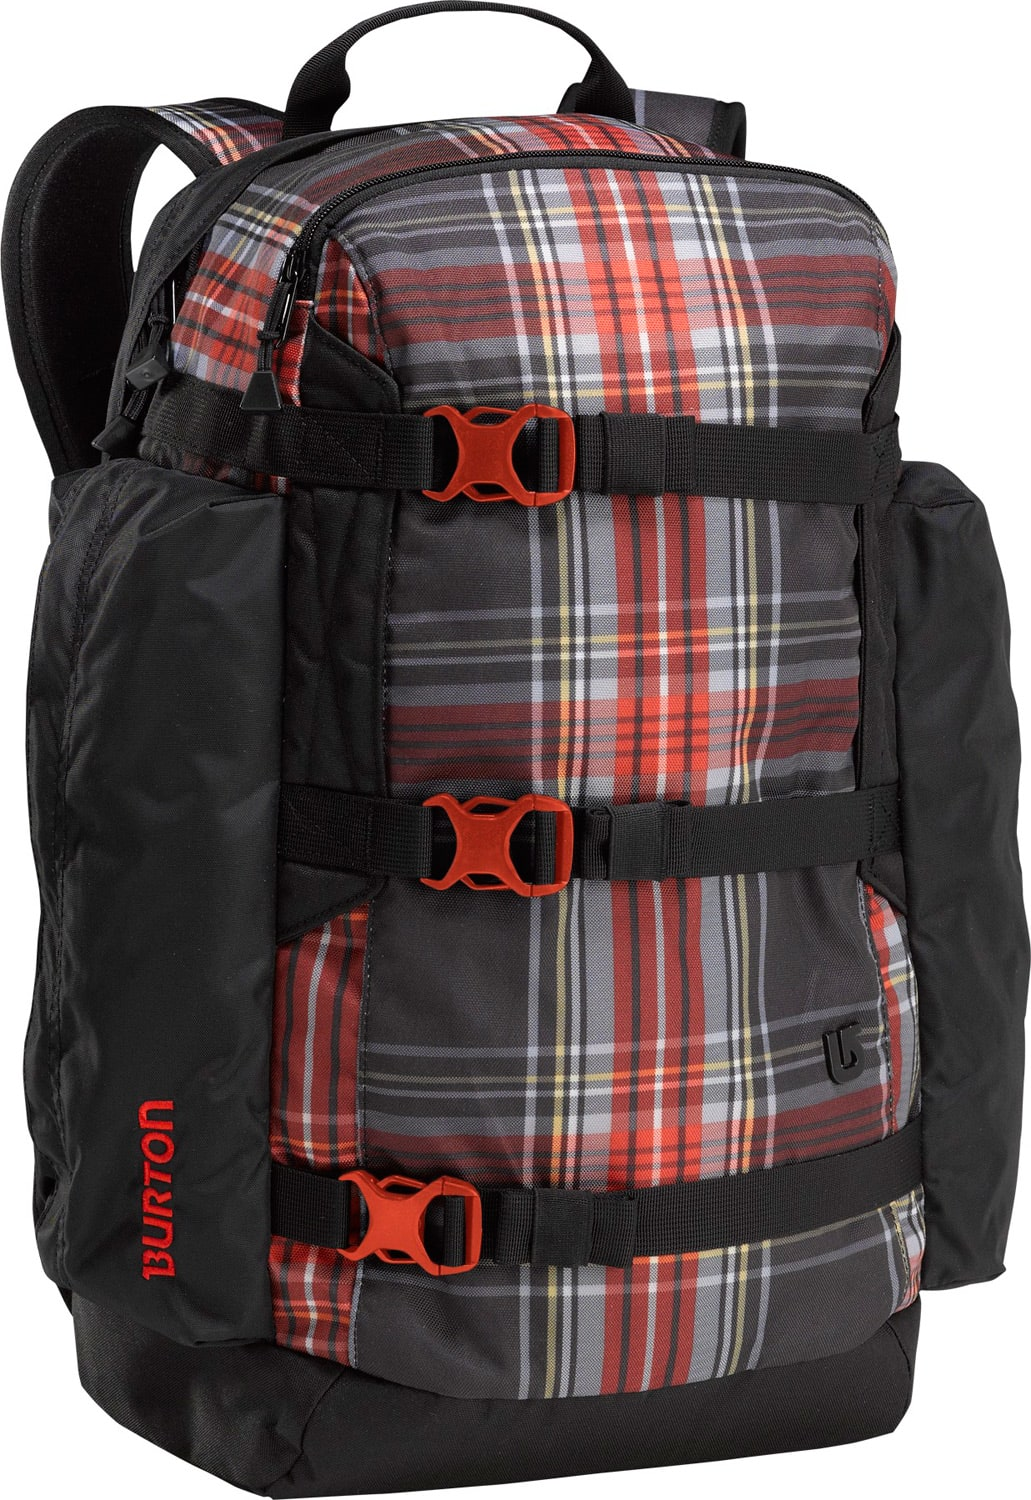 Burton Day Hiker Backpack Black Plaid 25L